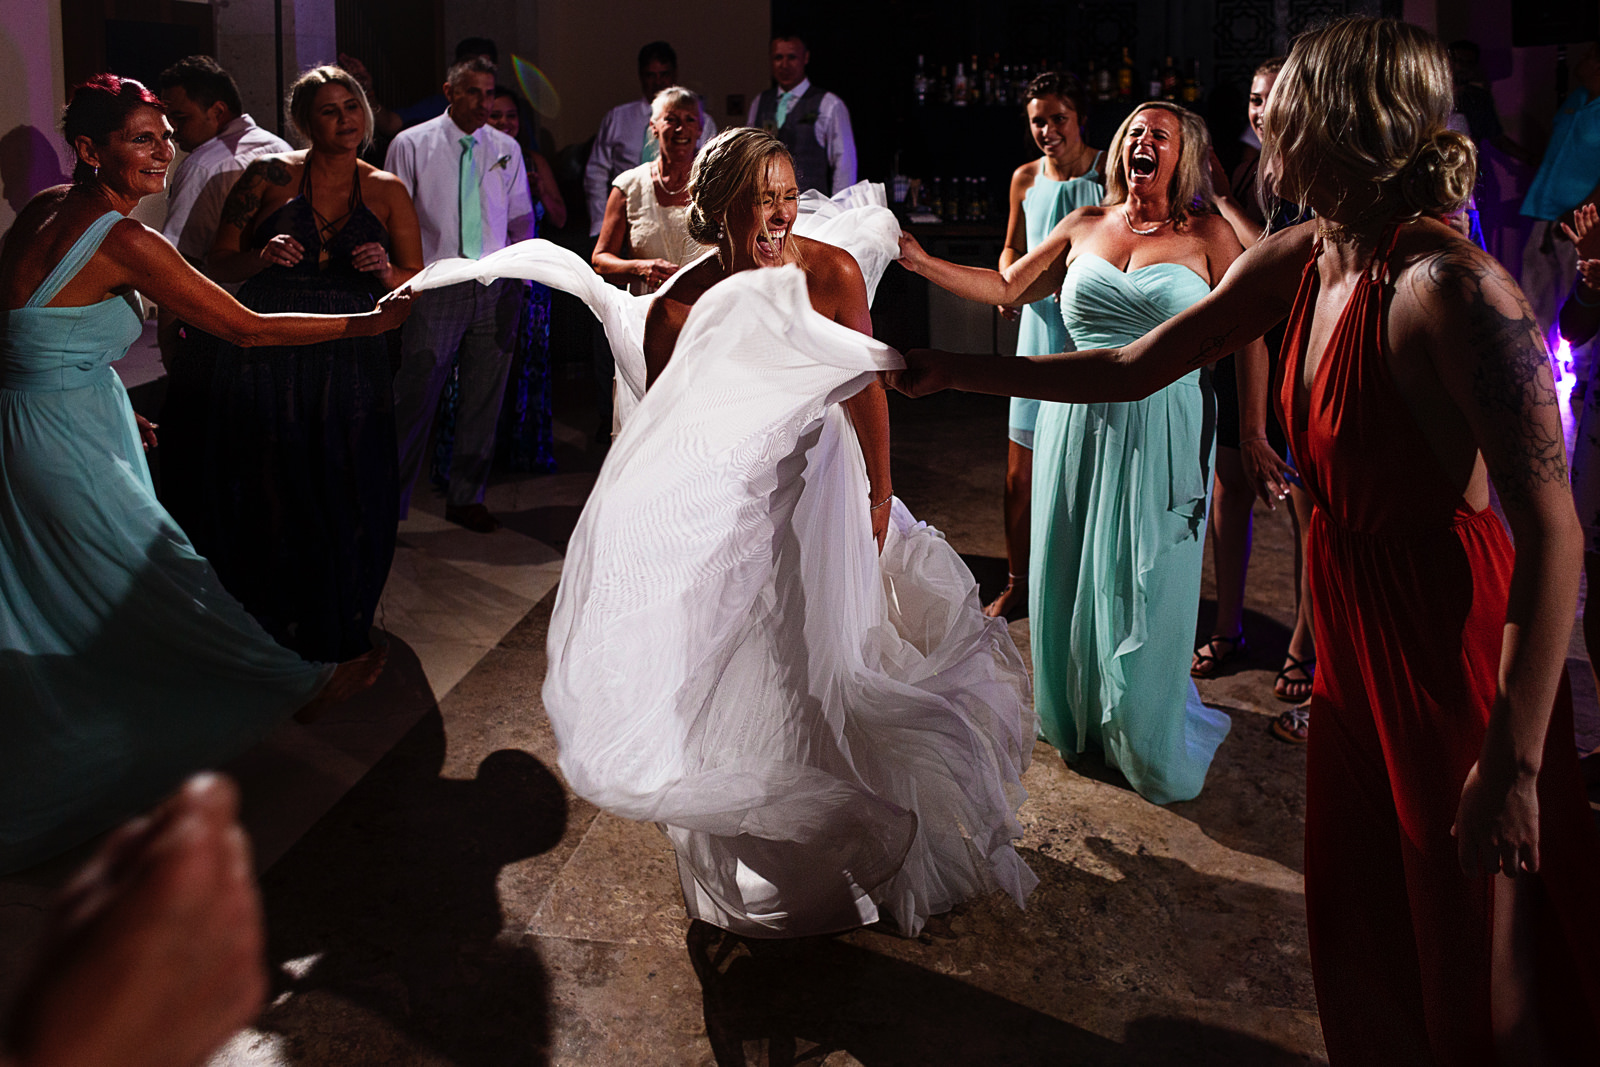 Wedding guests hold and lift the bride's dress in the dance floor